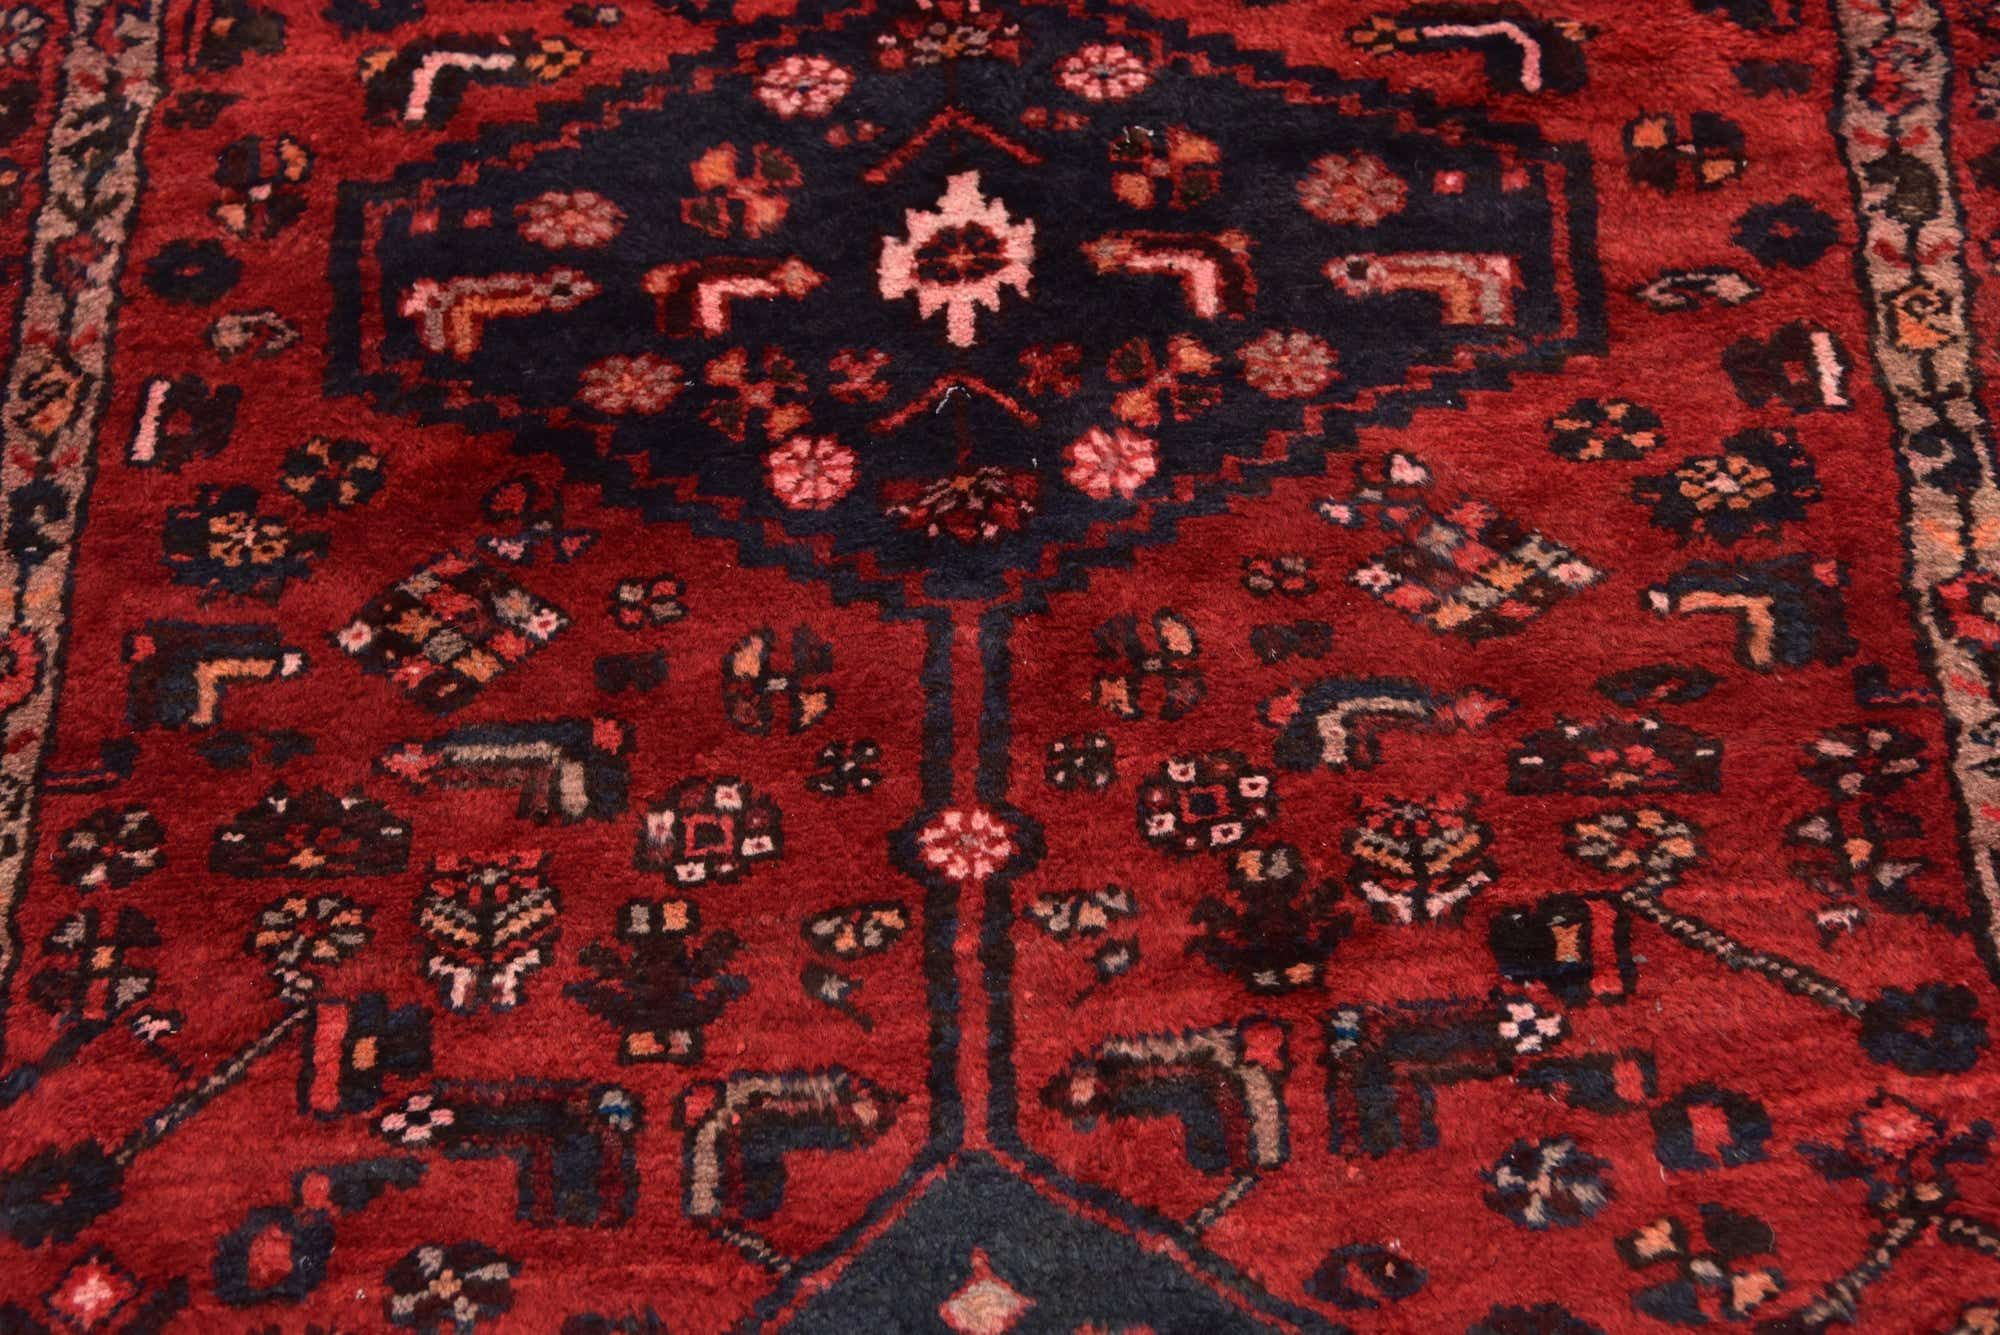 Red 3 5 X 10 Zanjan Persian Runner Rug Sponsored Zanjan Red Rug Runner Persian Sponsored In 2020 Persian Rug Runners Rugs Rug Runner